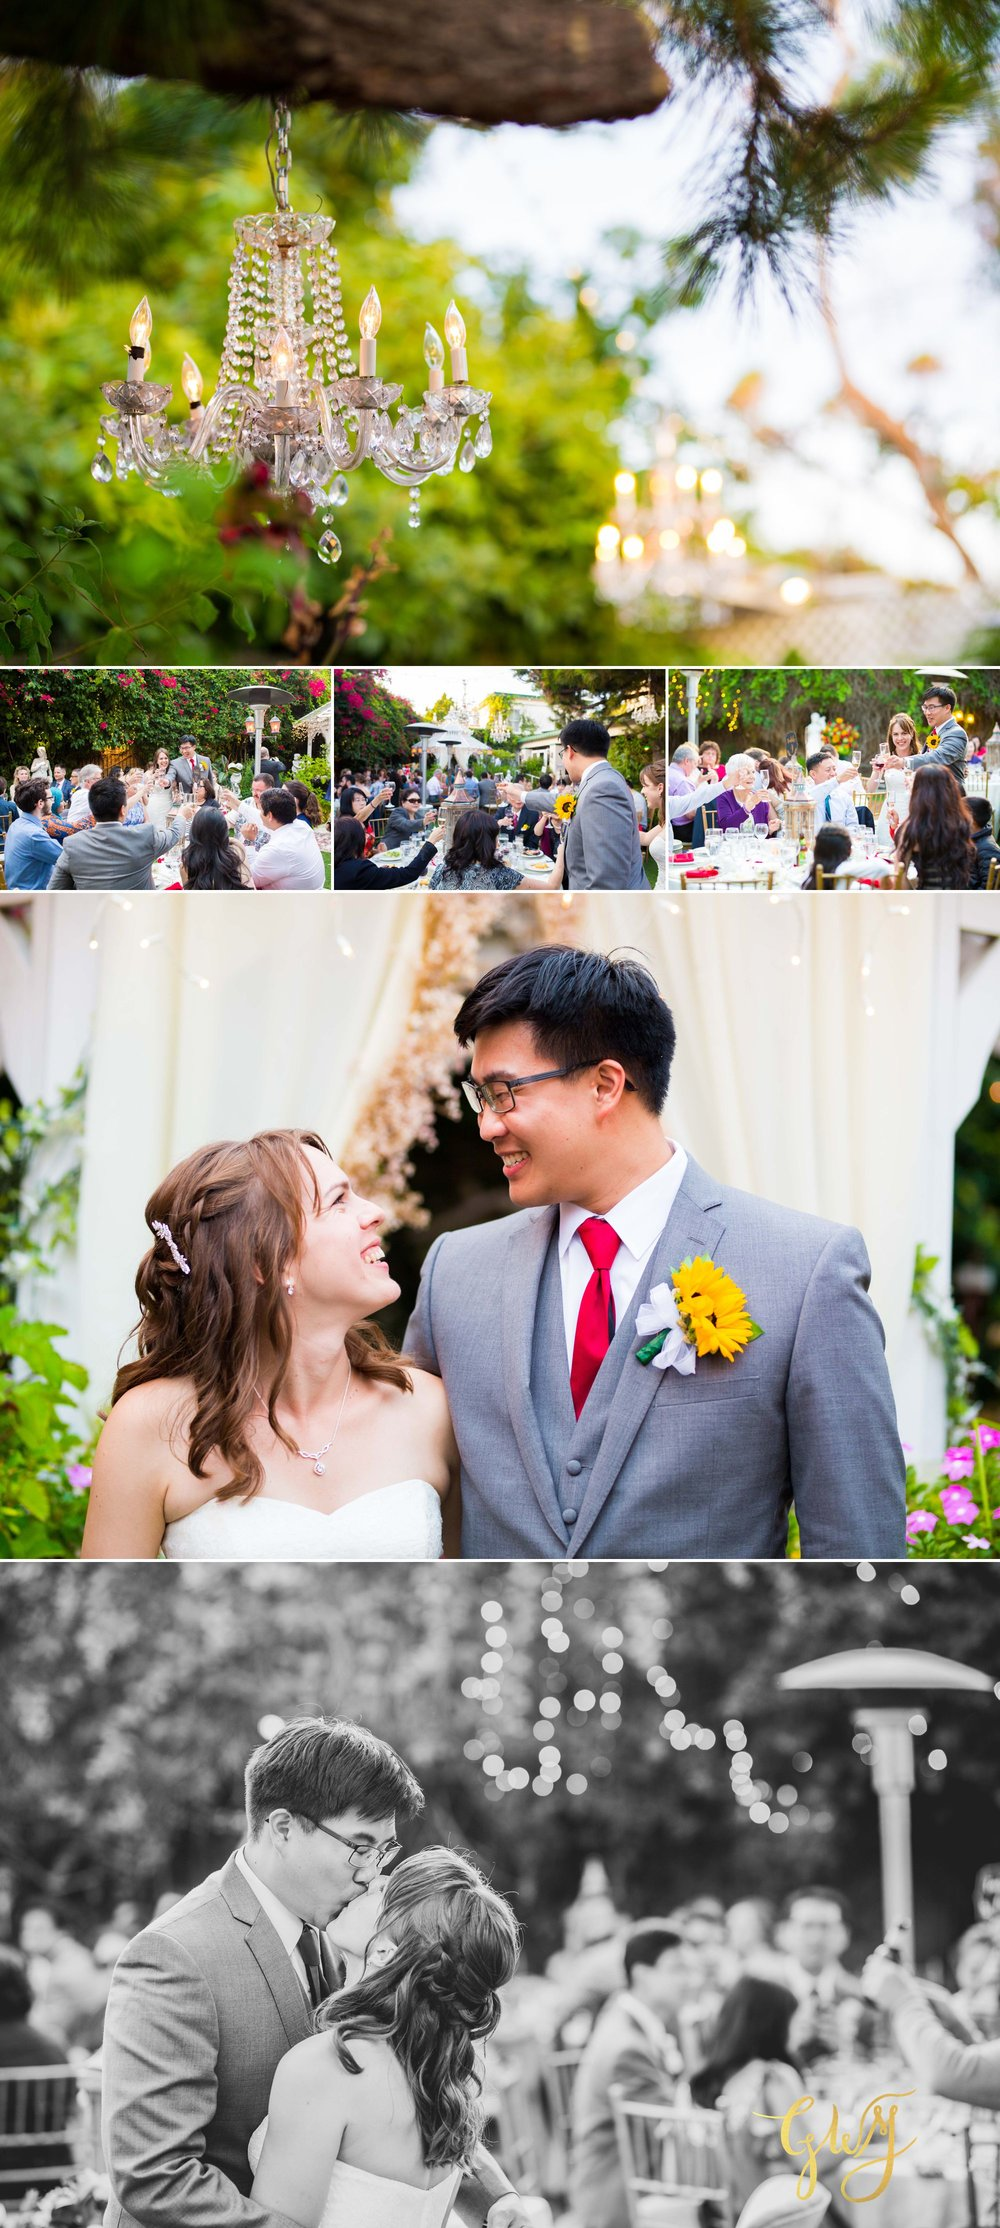 Amberly + Sam Wedding 23.jpg